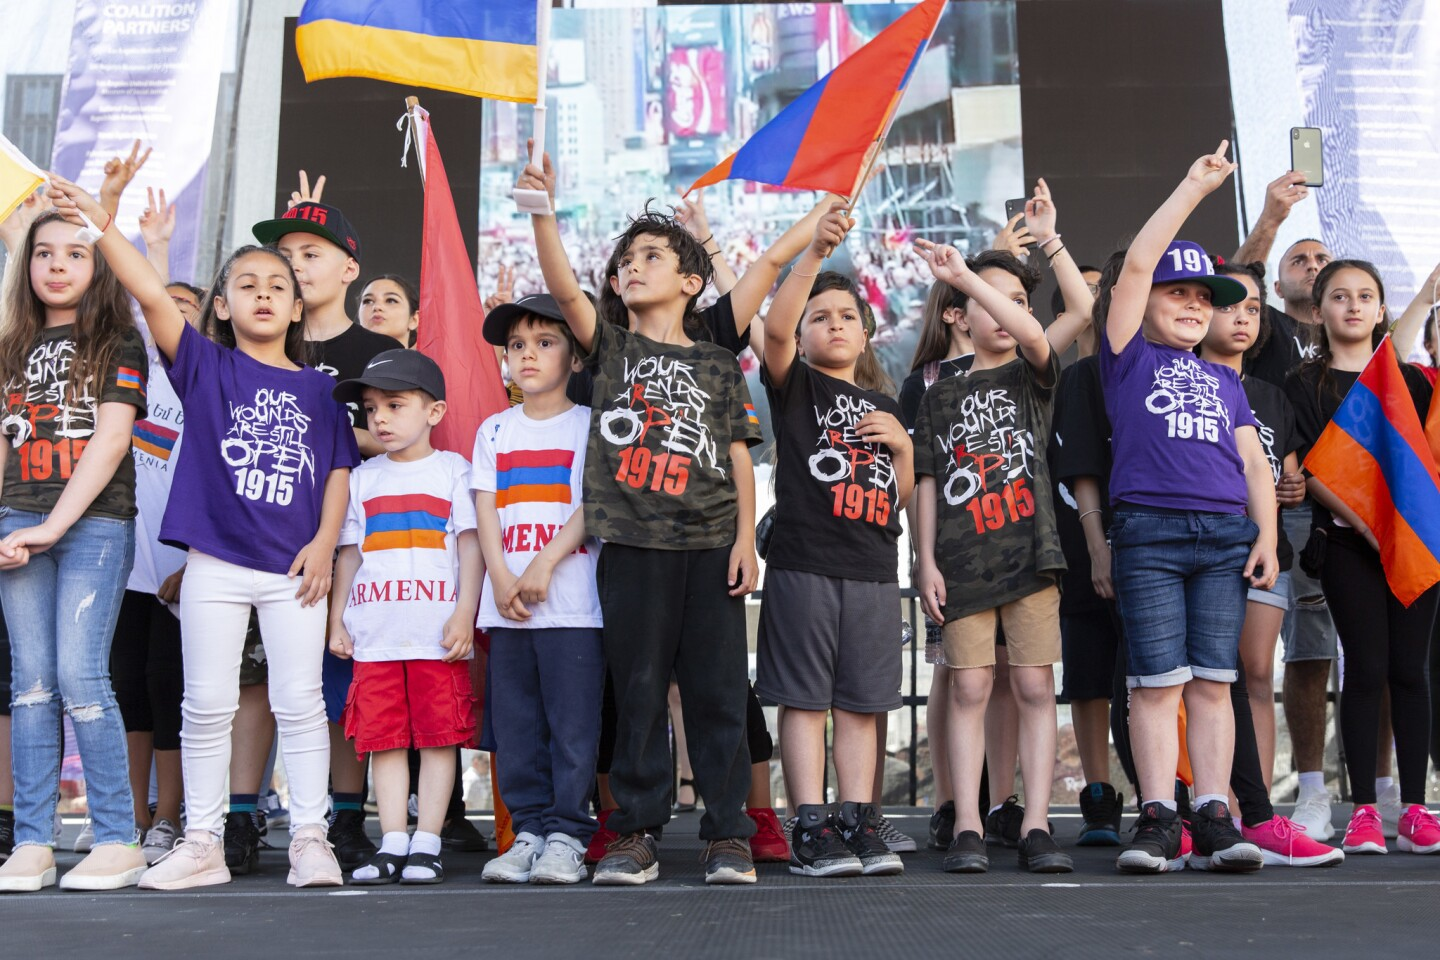 Children participate in a rally outside the Turkish Consulate in Los Angeles to remember the Armenian genocide of more than a century ago.